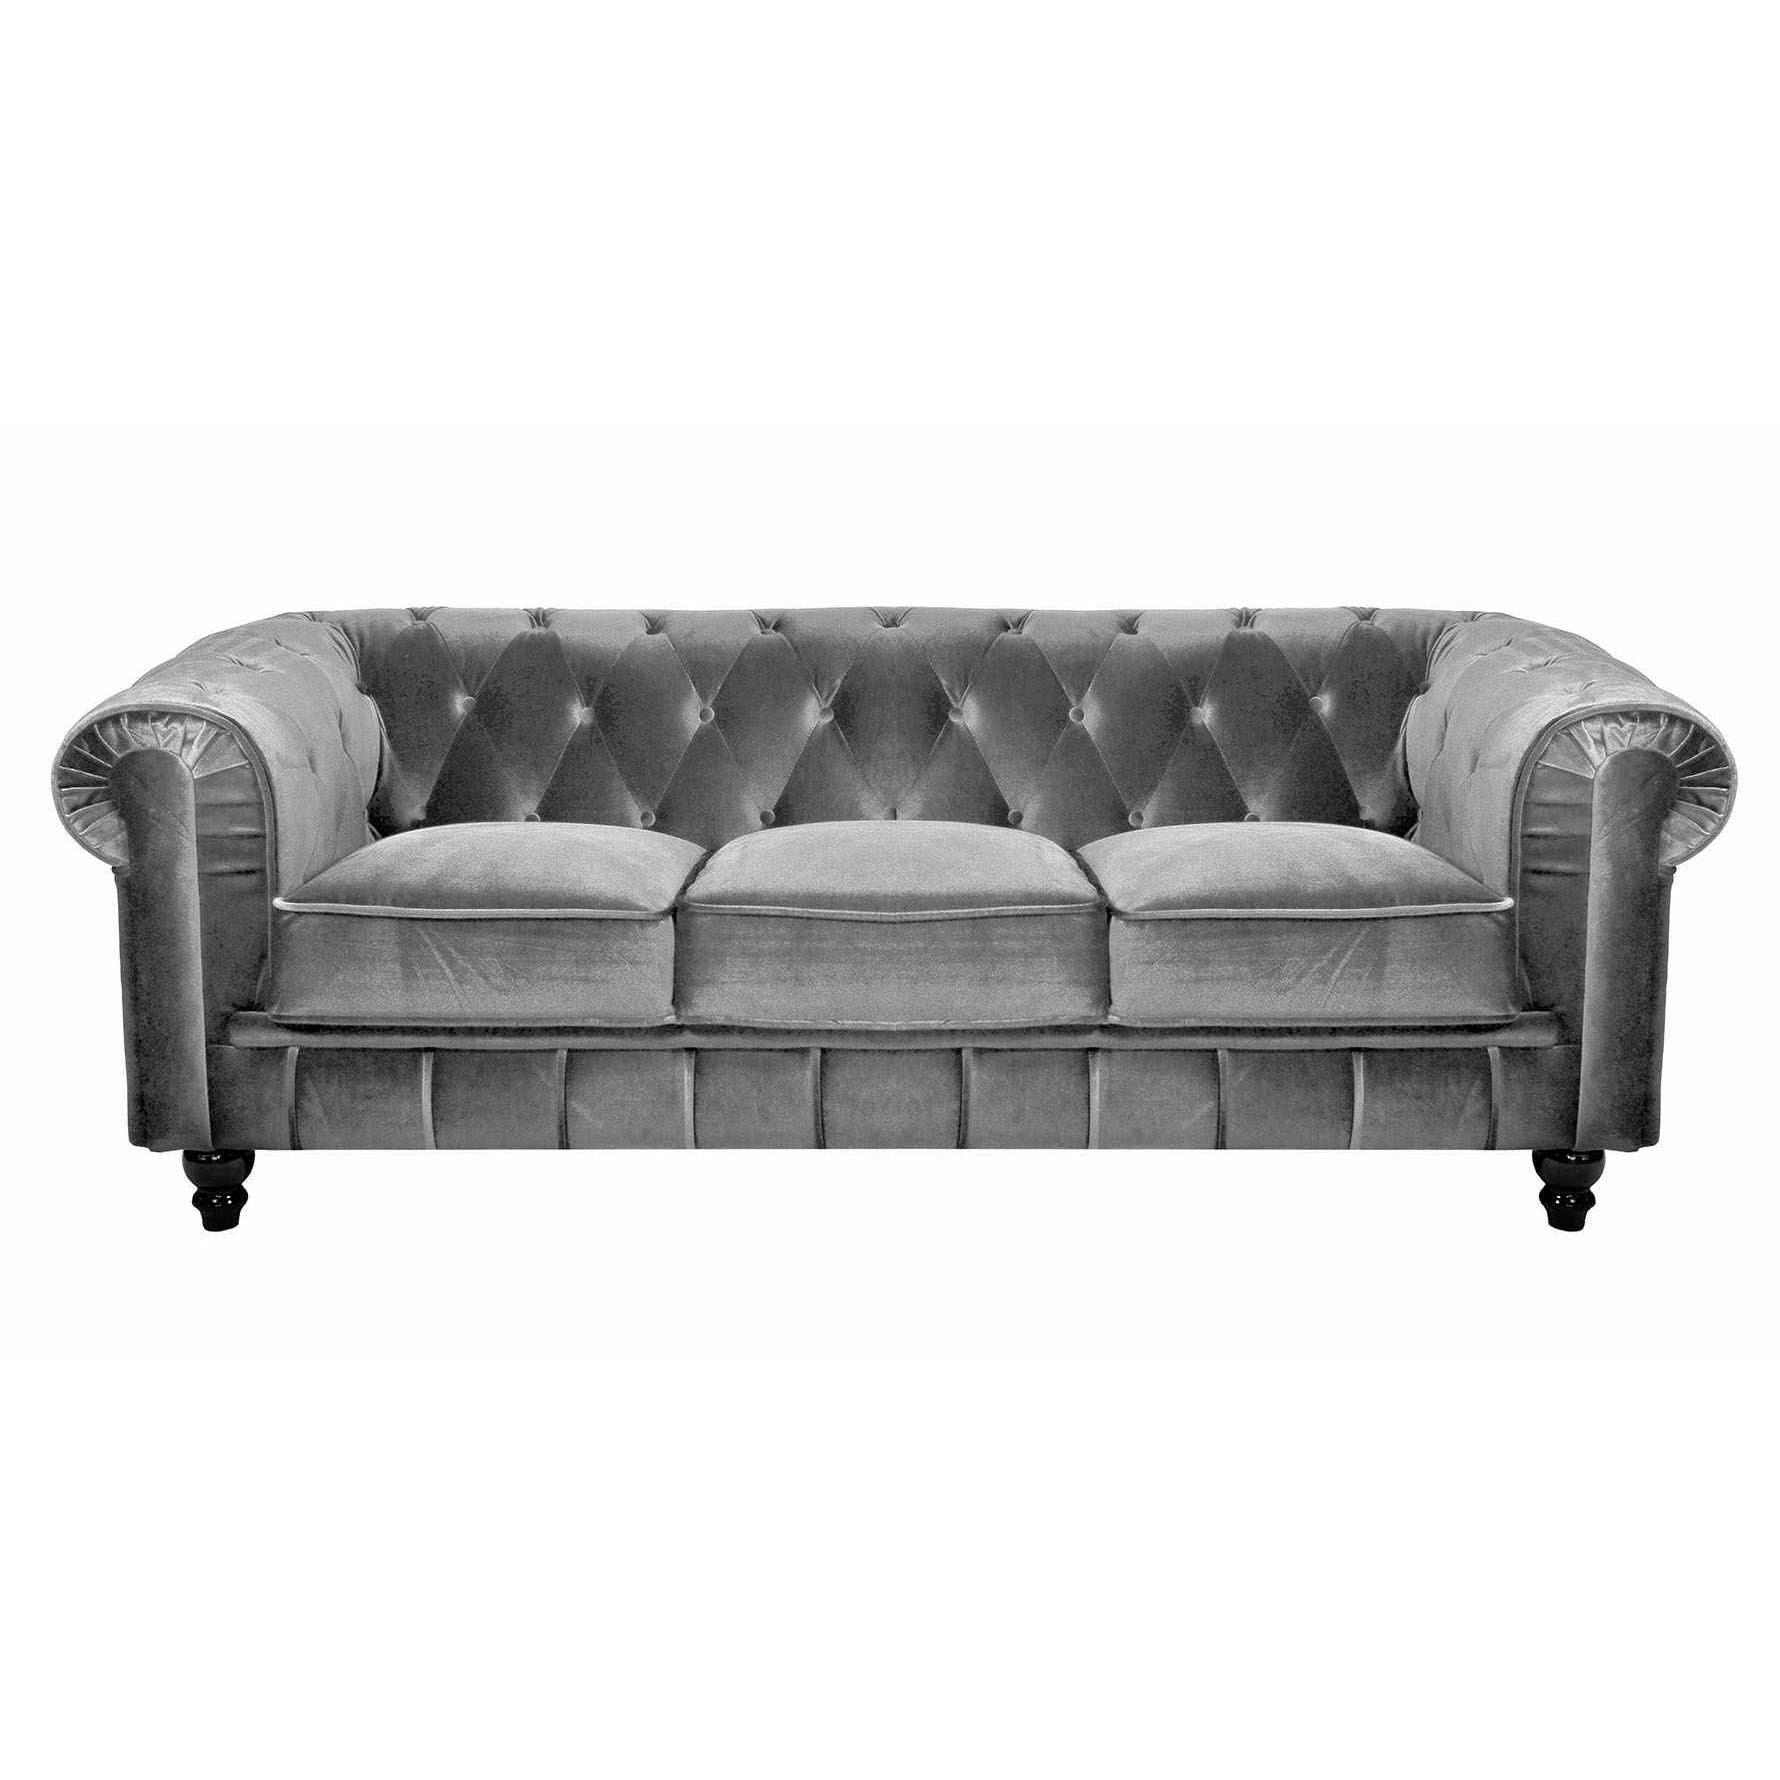 Deco in paris canape 3 places velours gris chesterfield for Canape 3 places gris